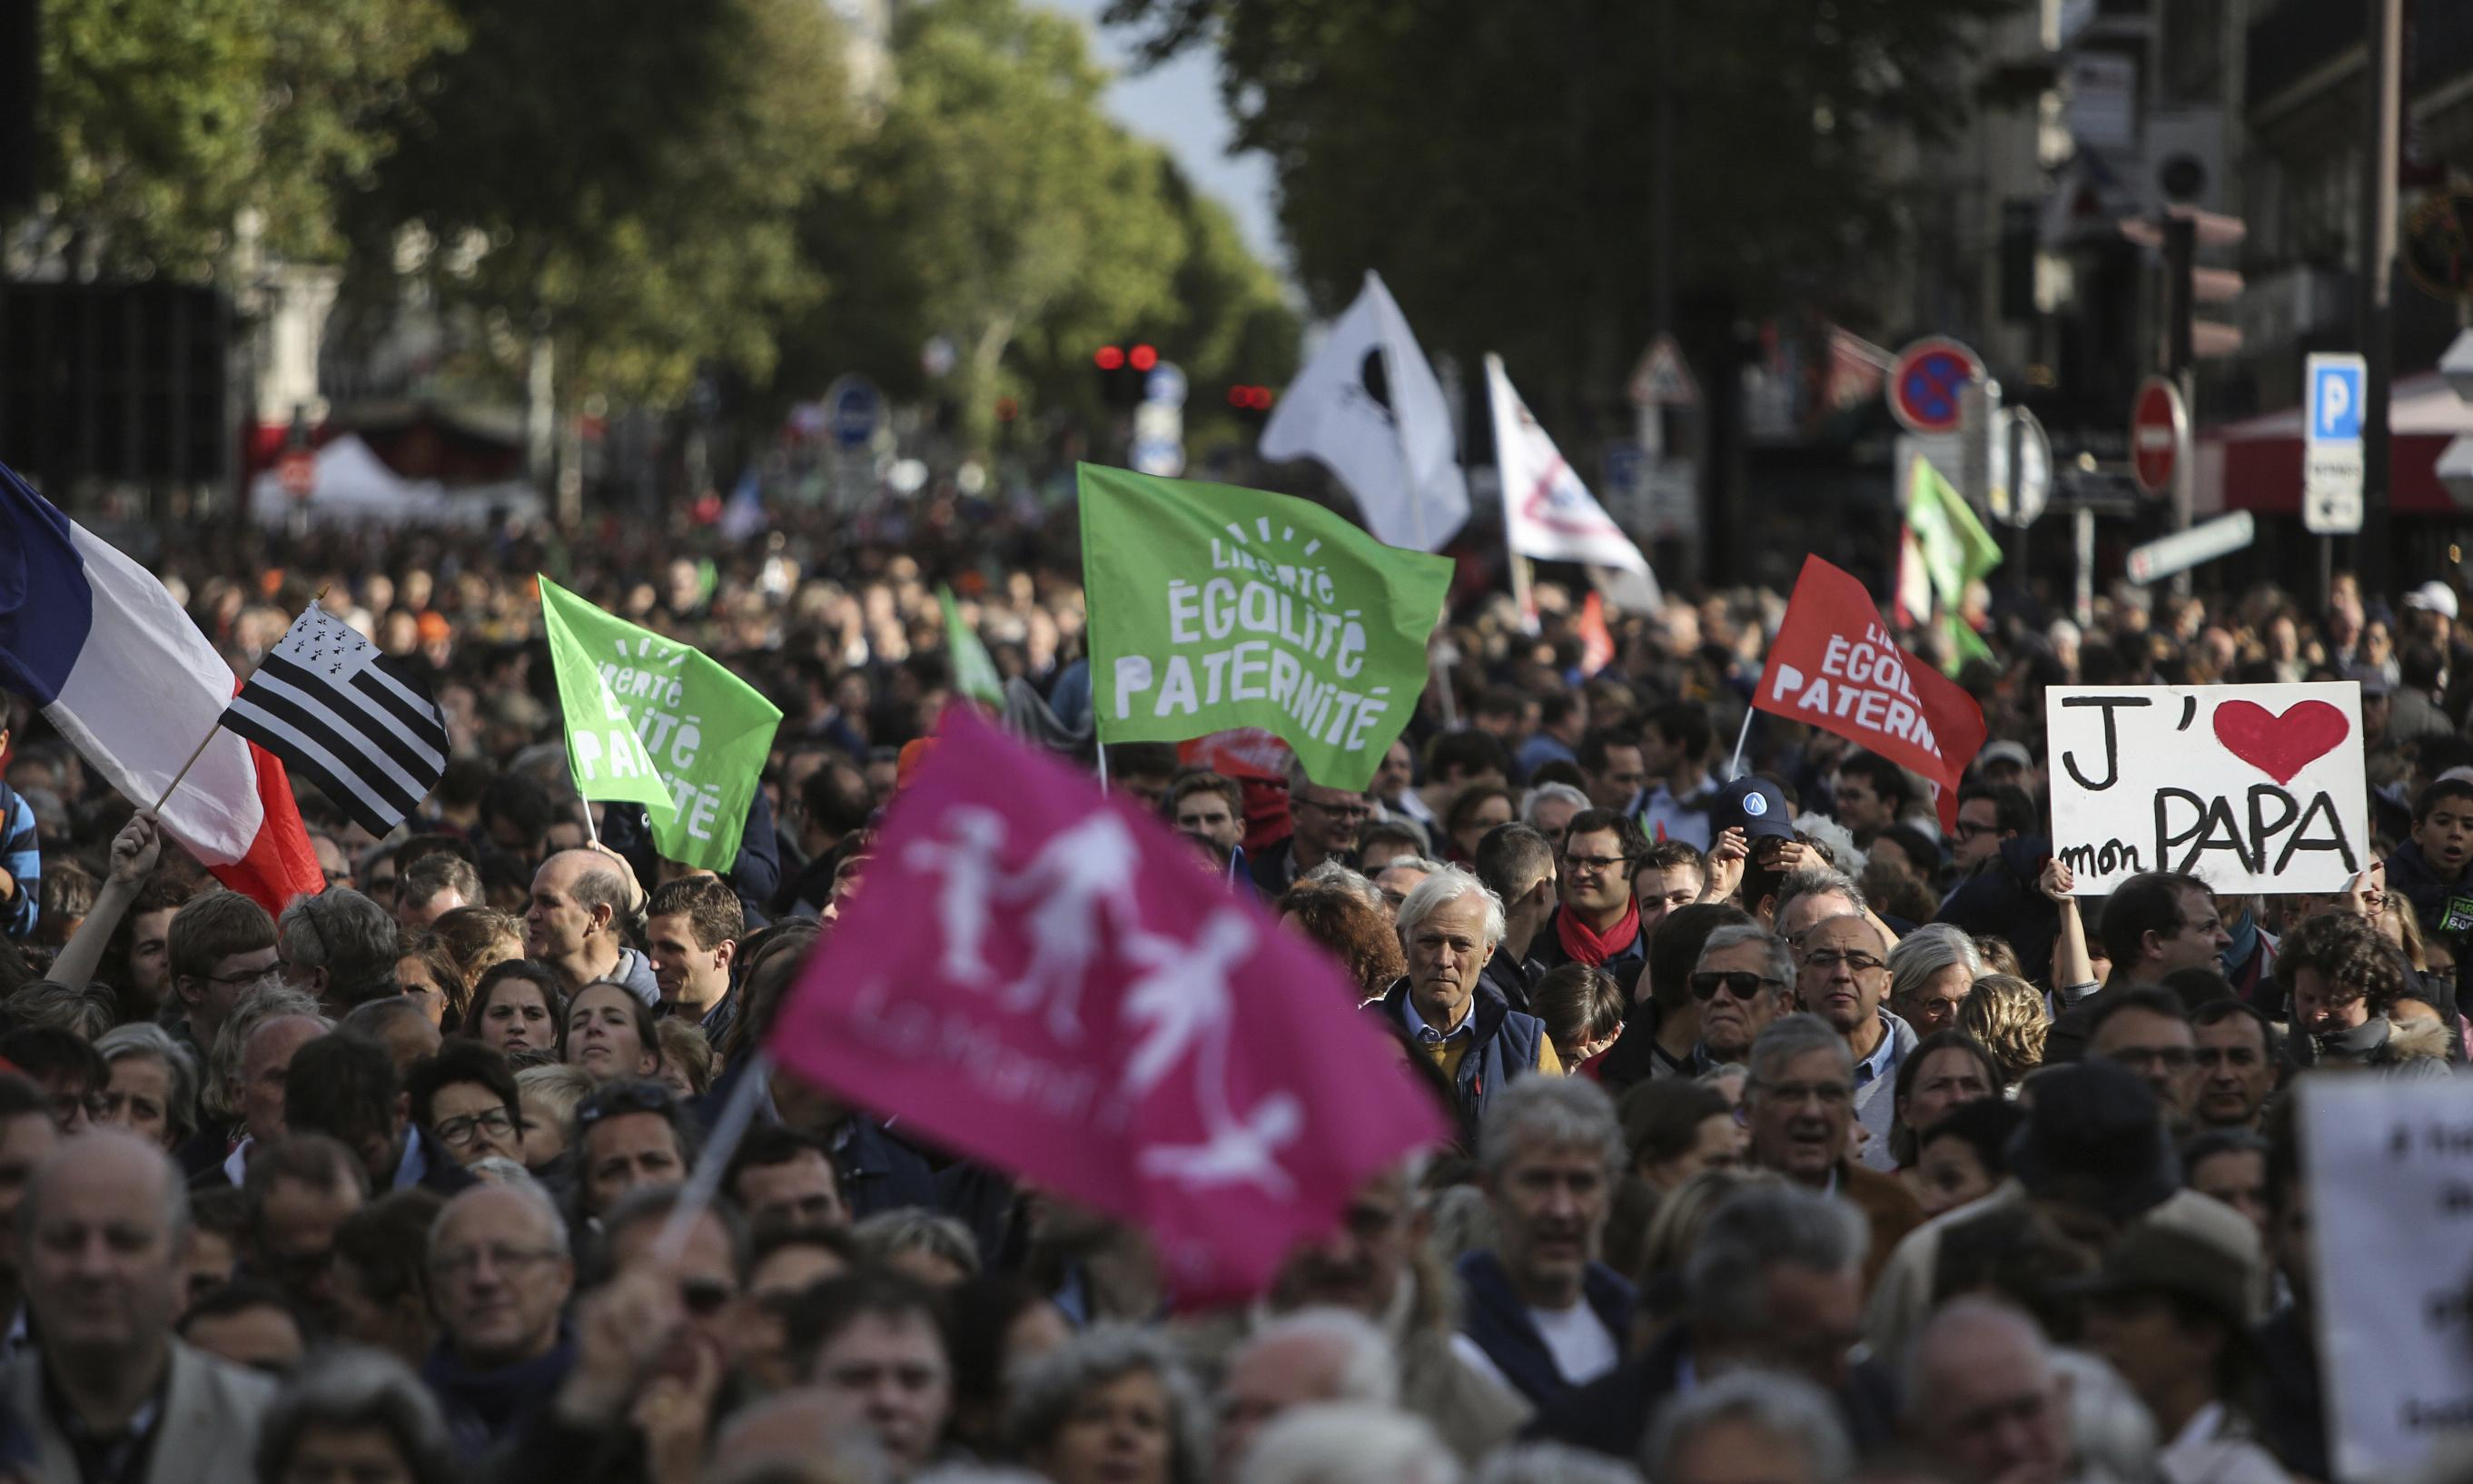 French protests against IVF treatment for gay and single women